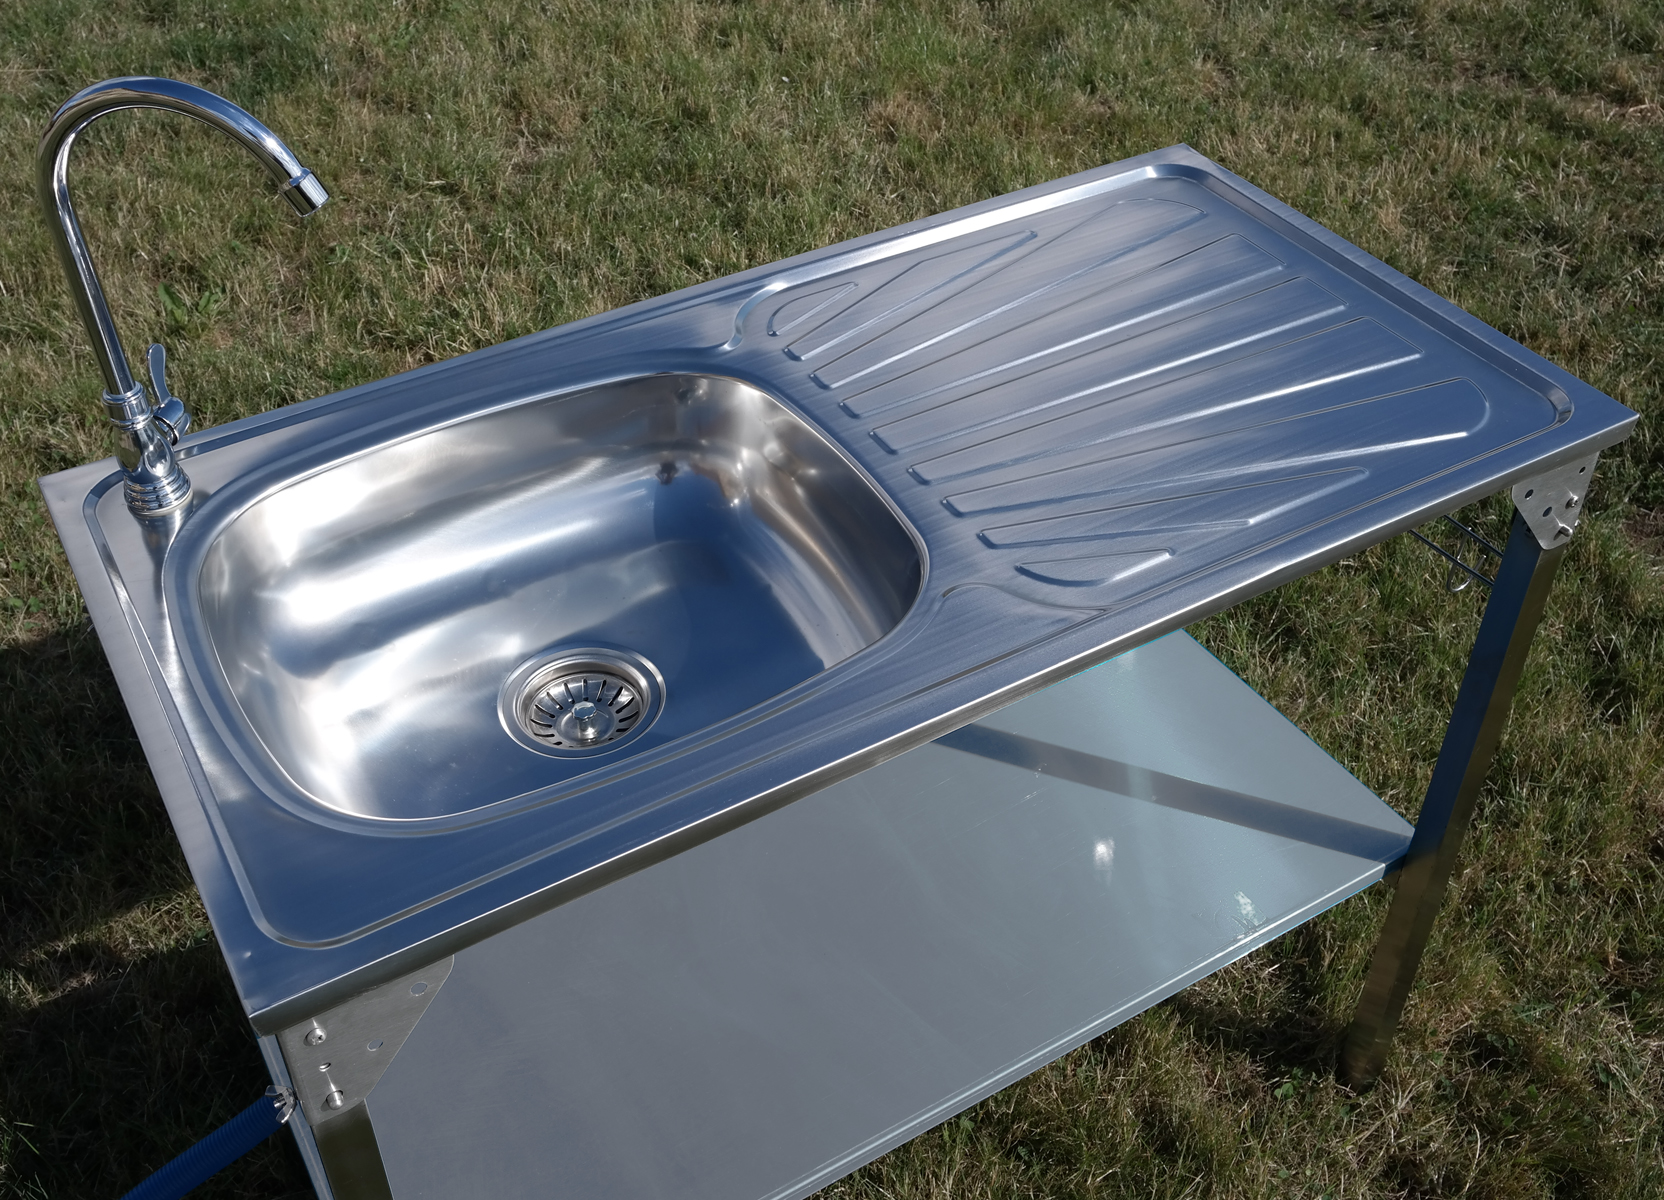 CAMPING SINK OUTDOOR KITCHEN STAINLESS STEEL DRAINING ... on Outdoor Patio Sink id=89622